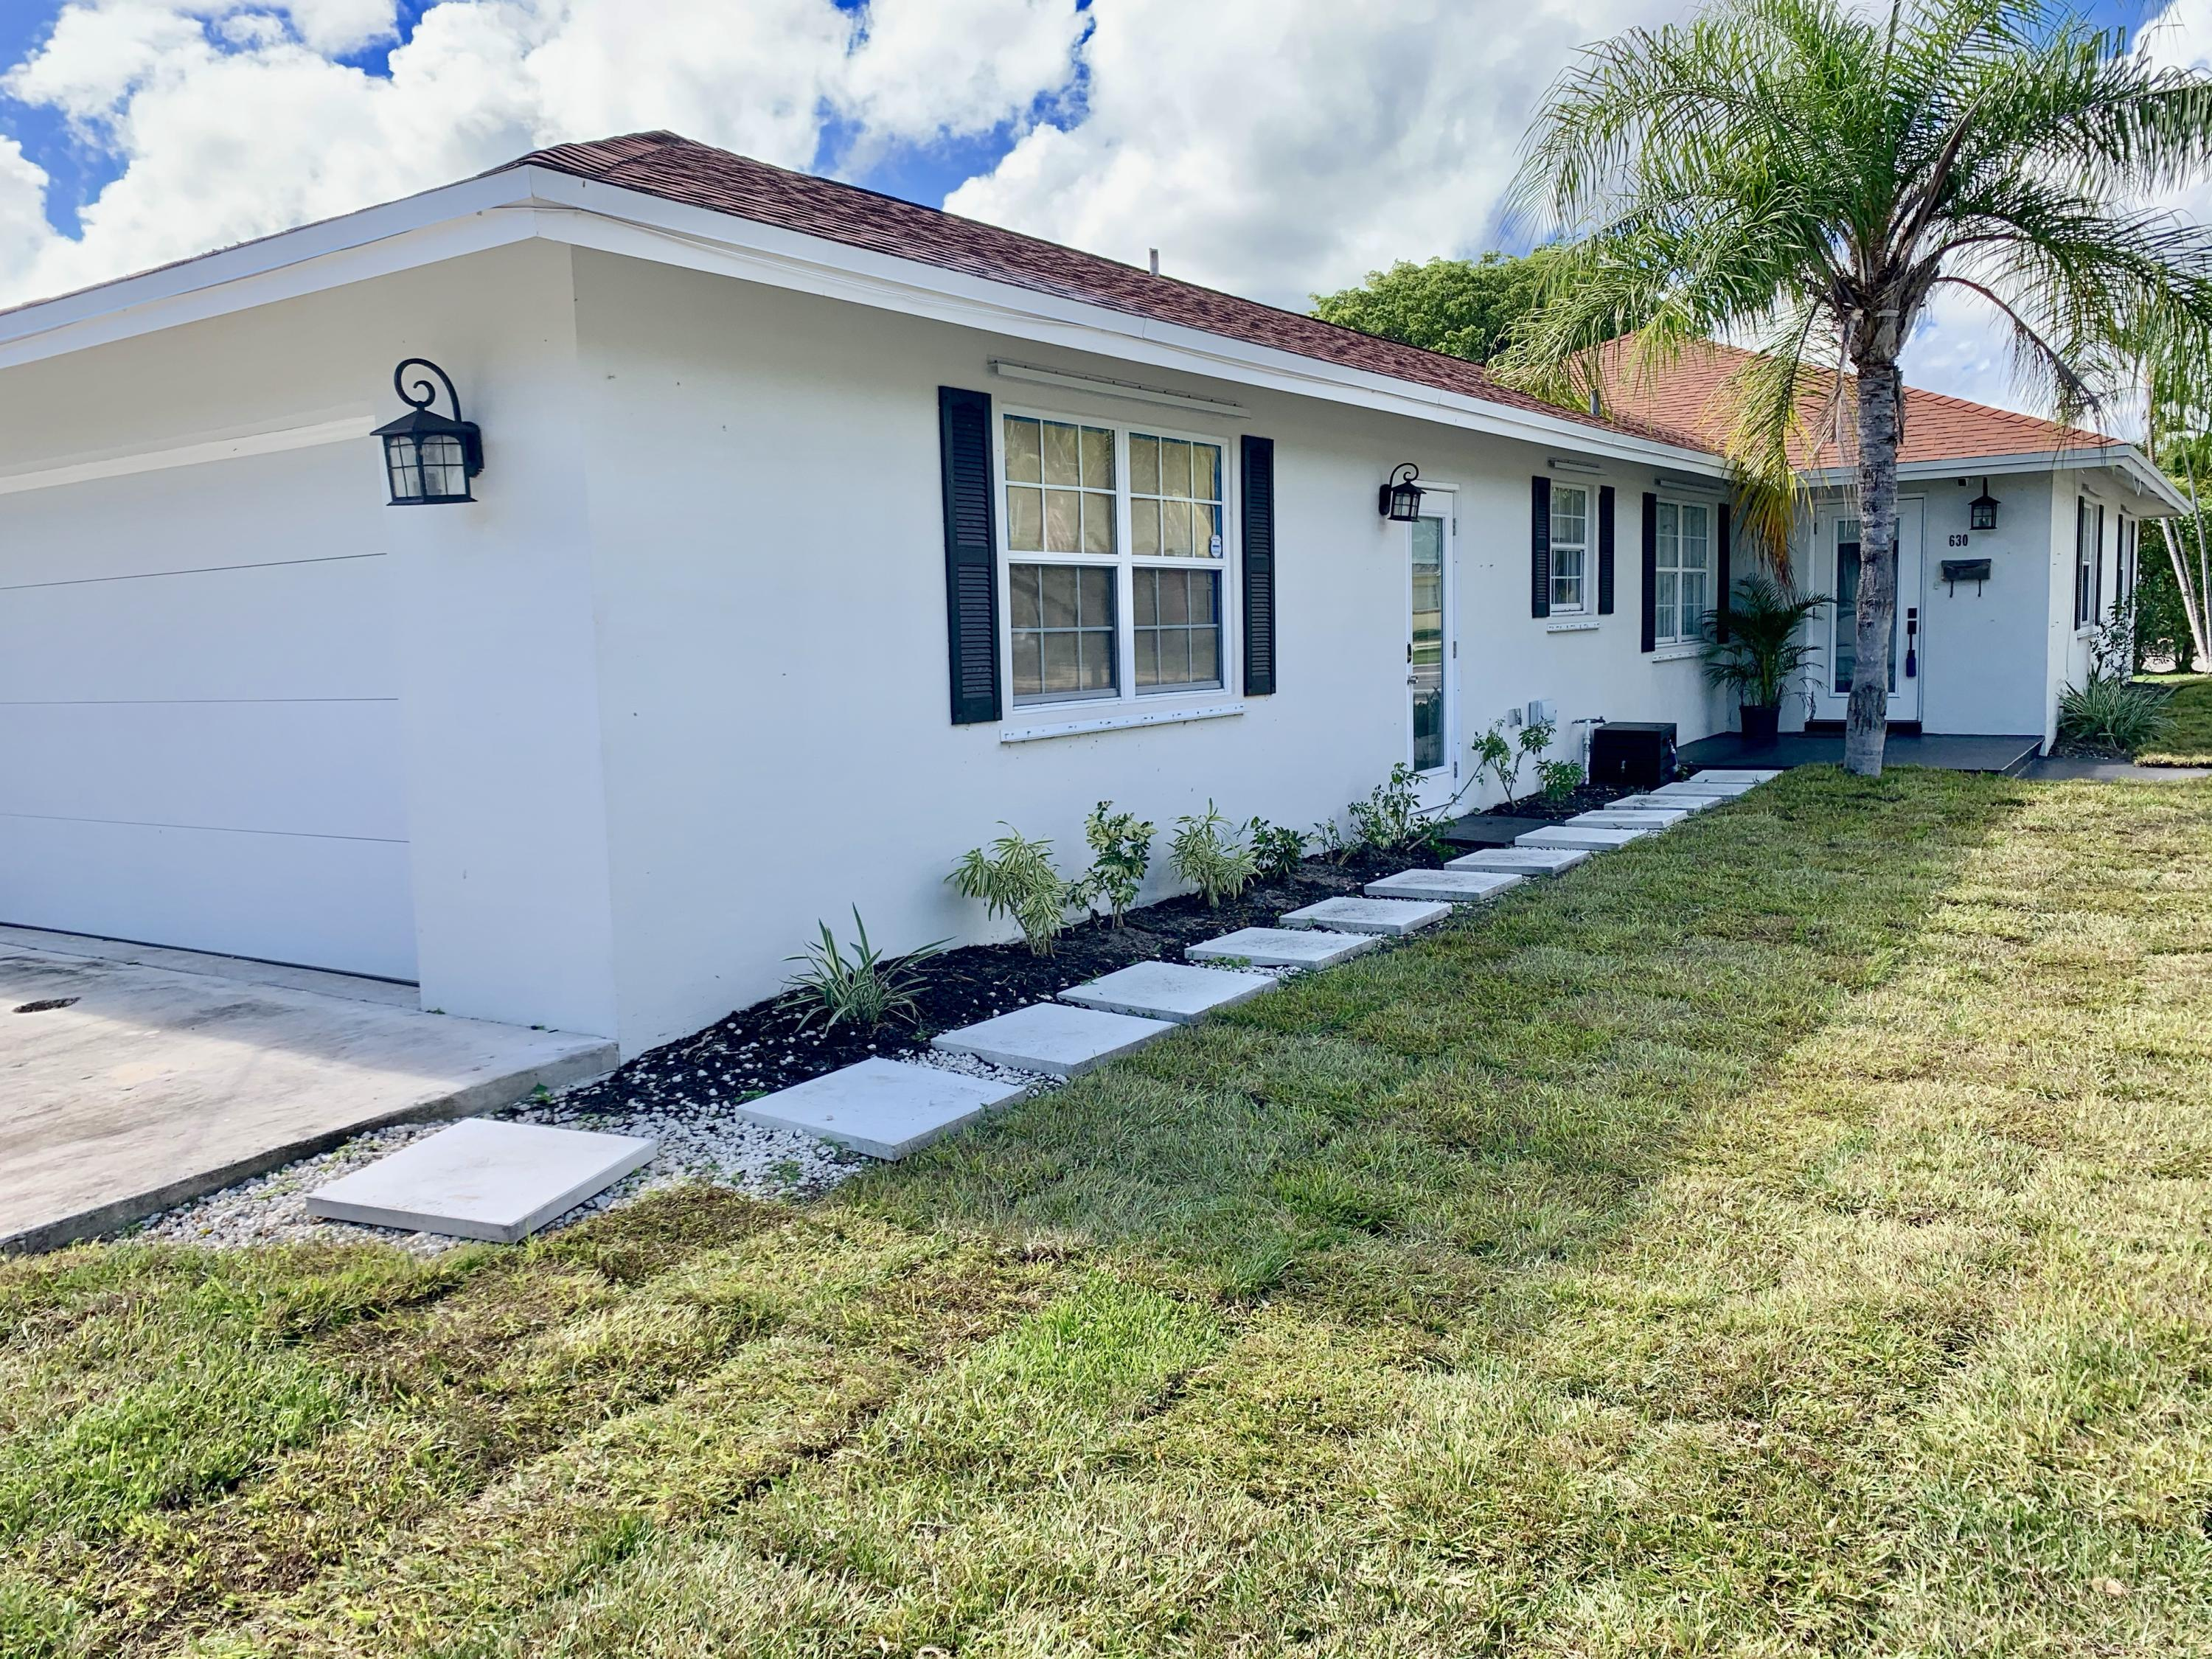 Photo of 630 N Palmway, Lake Worth, FL 33460